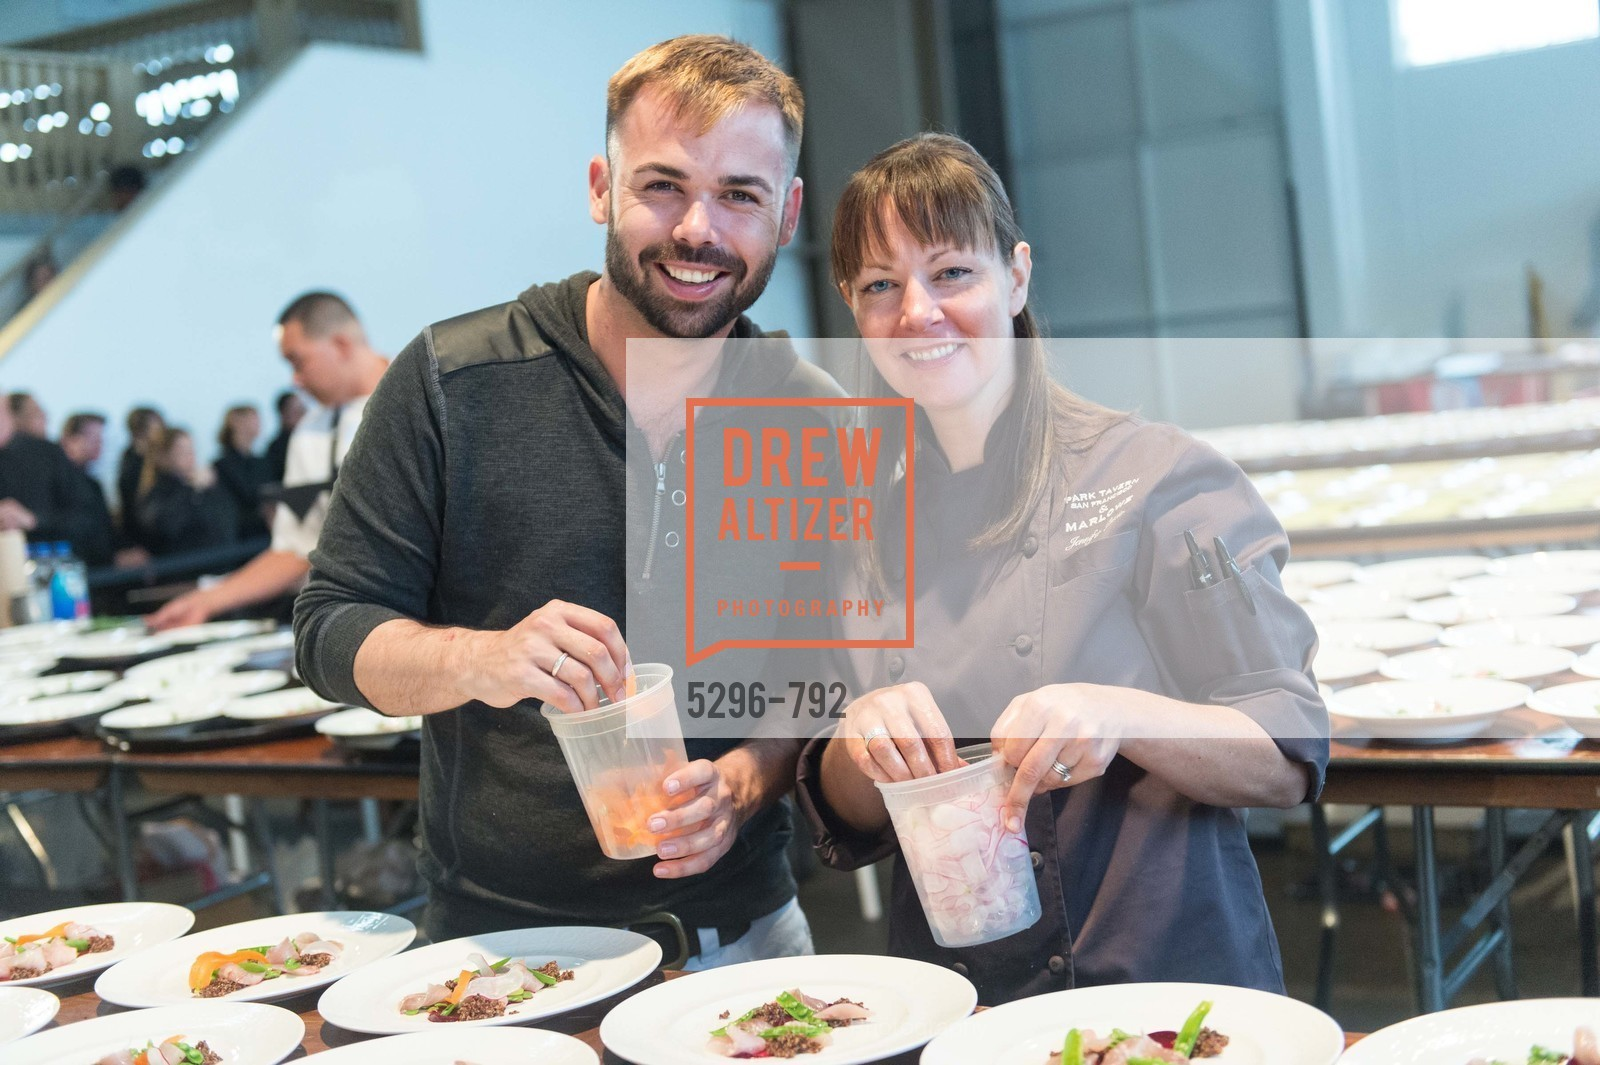 Bradley Waldon, Jennifer Puccio, MEALS ON WHEELS OF SAN FRANCISCO'S 28th Annual Star Chefs and Vintners Gala, US, April 19th, 2015,Drew Altizer, Drew Altizer Photography, full-service agency, private events, San Francisco photographer, photographer california